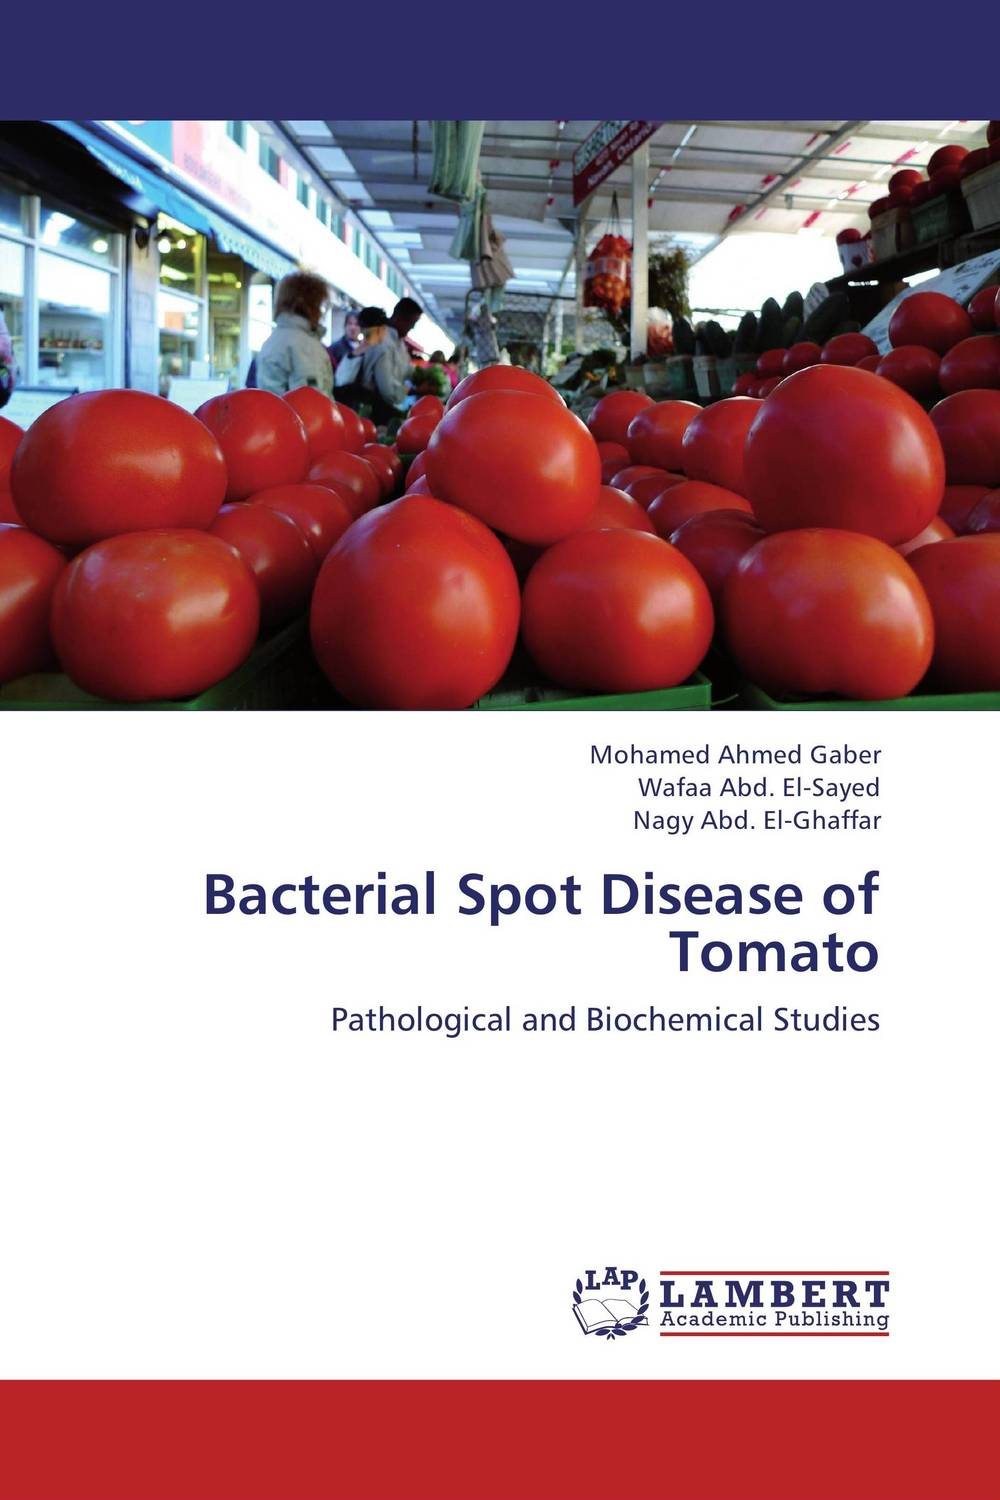 Bacterial Spot Disease of Tomato resistance study in tomato